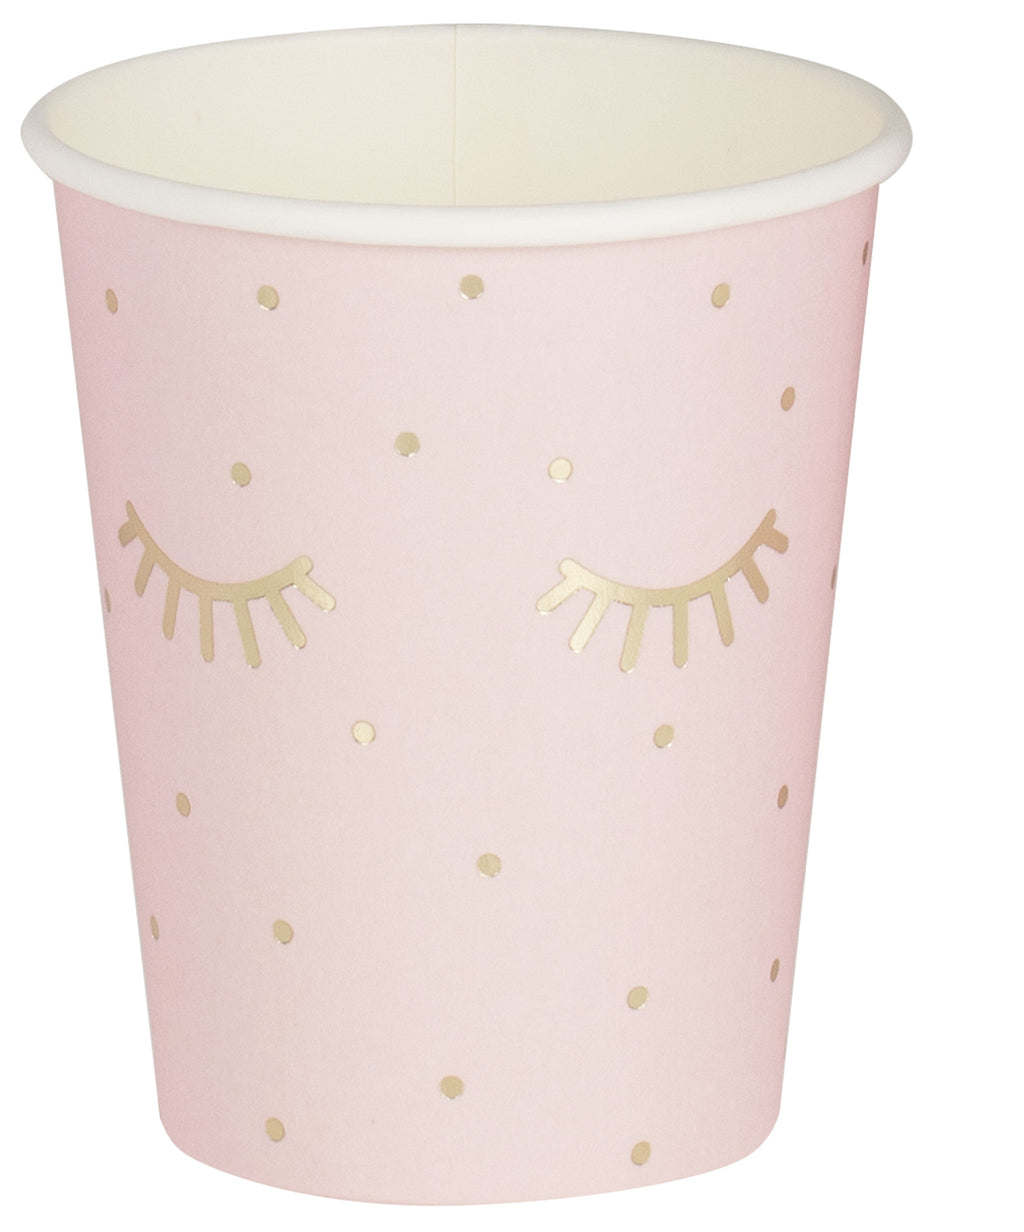 Gold Foiled and Pink Sleepy Eyes Paper Cups